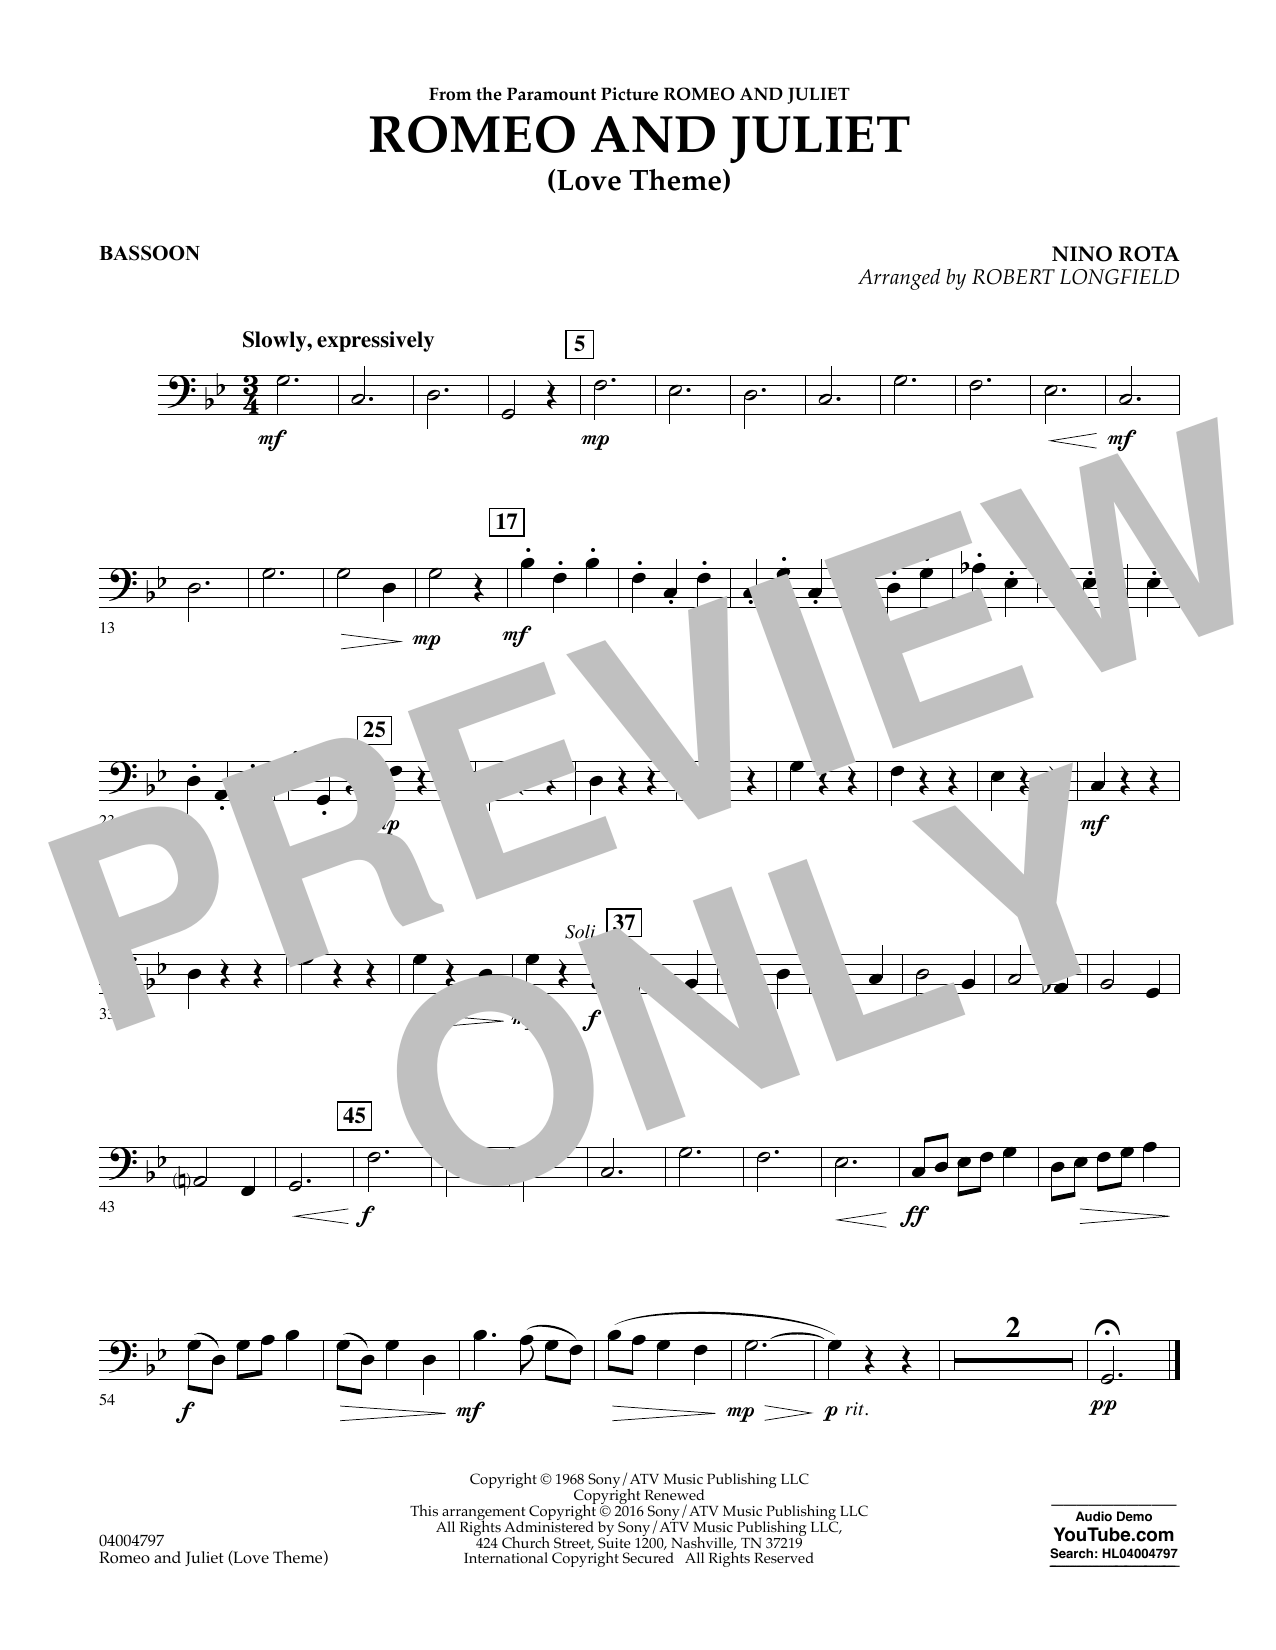 Romeo and Juliet (Love Theme) - Bassoon (Concert Band)